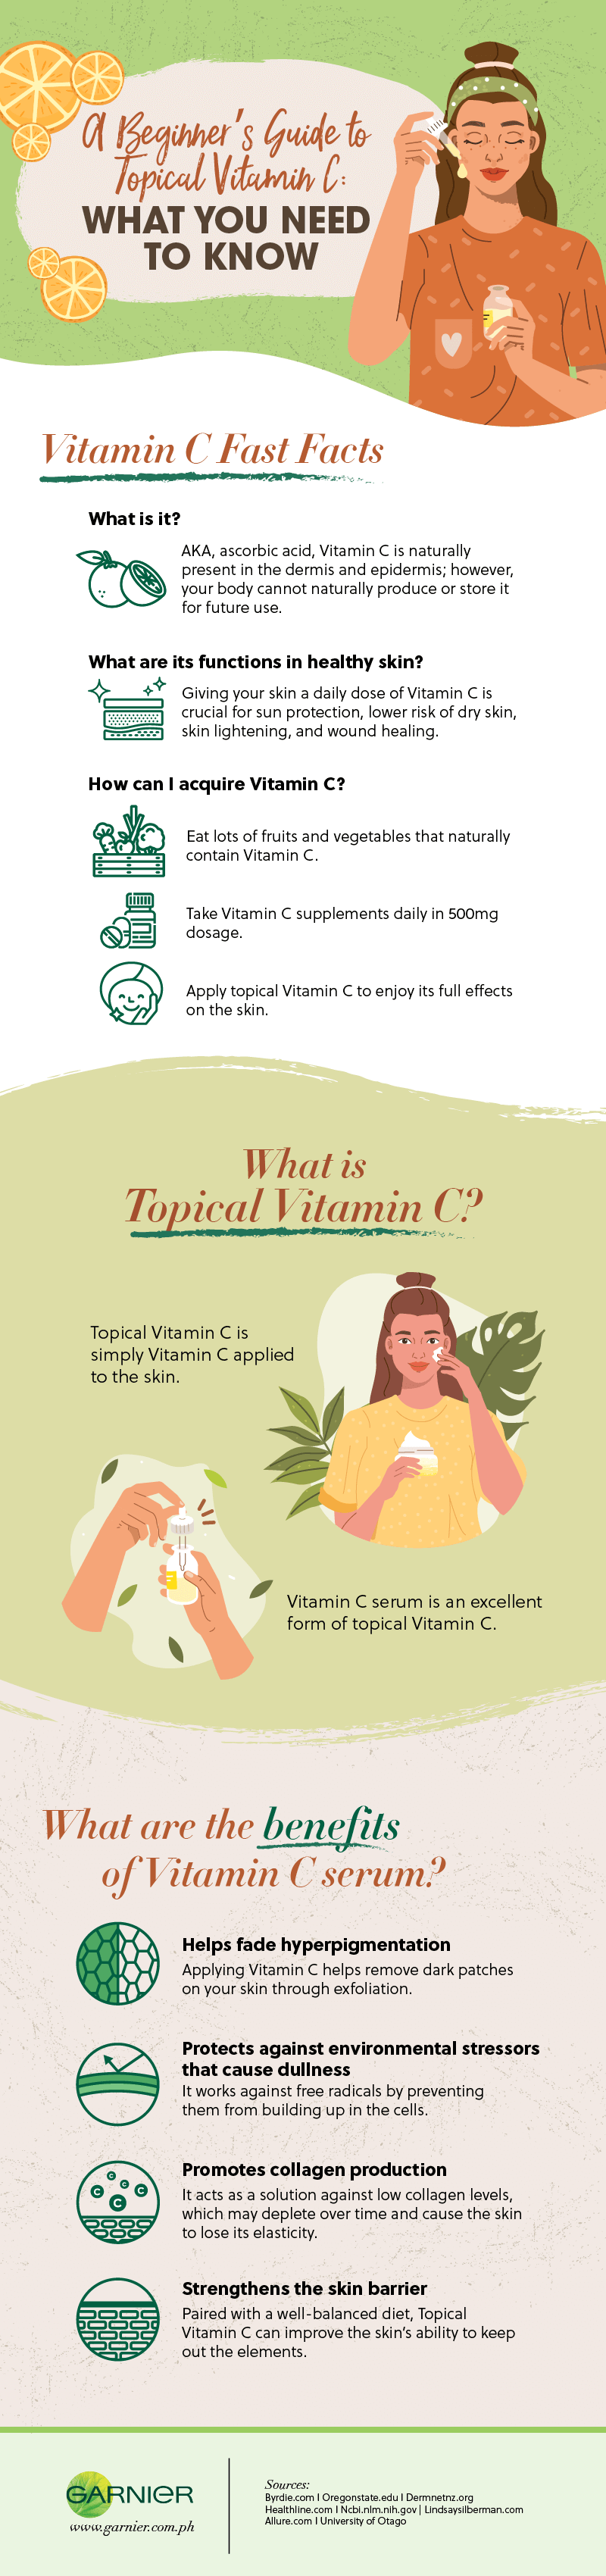 Beginner's Guide to Topical Vitamin C